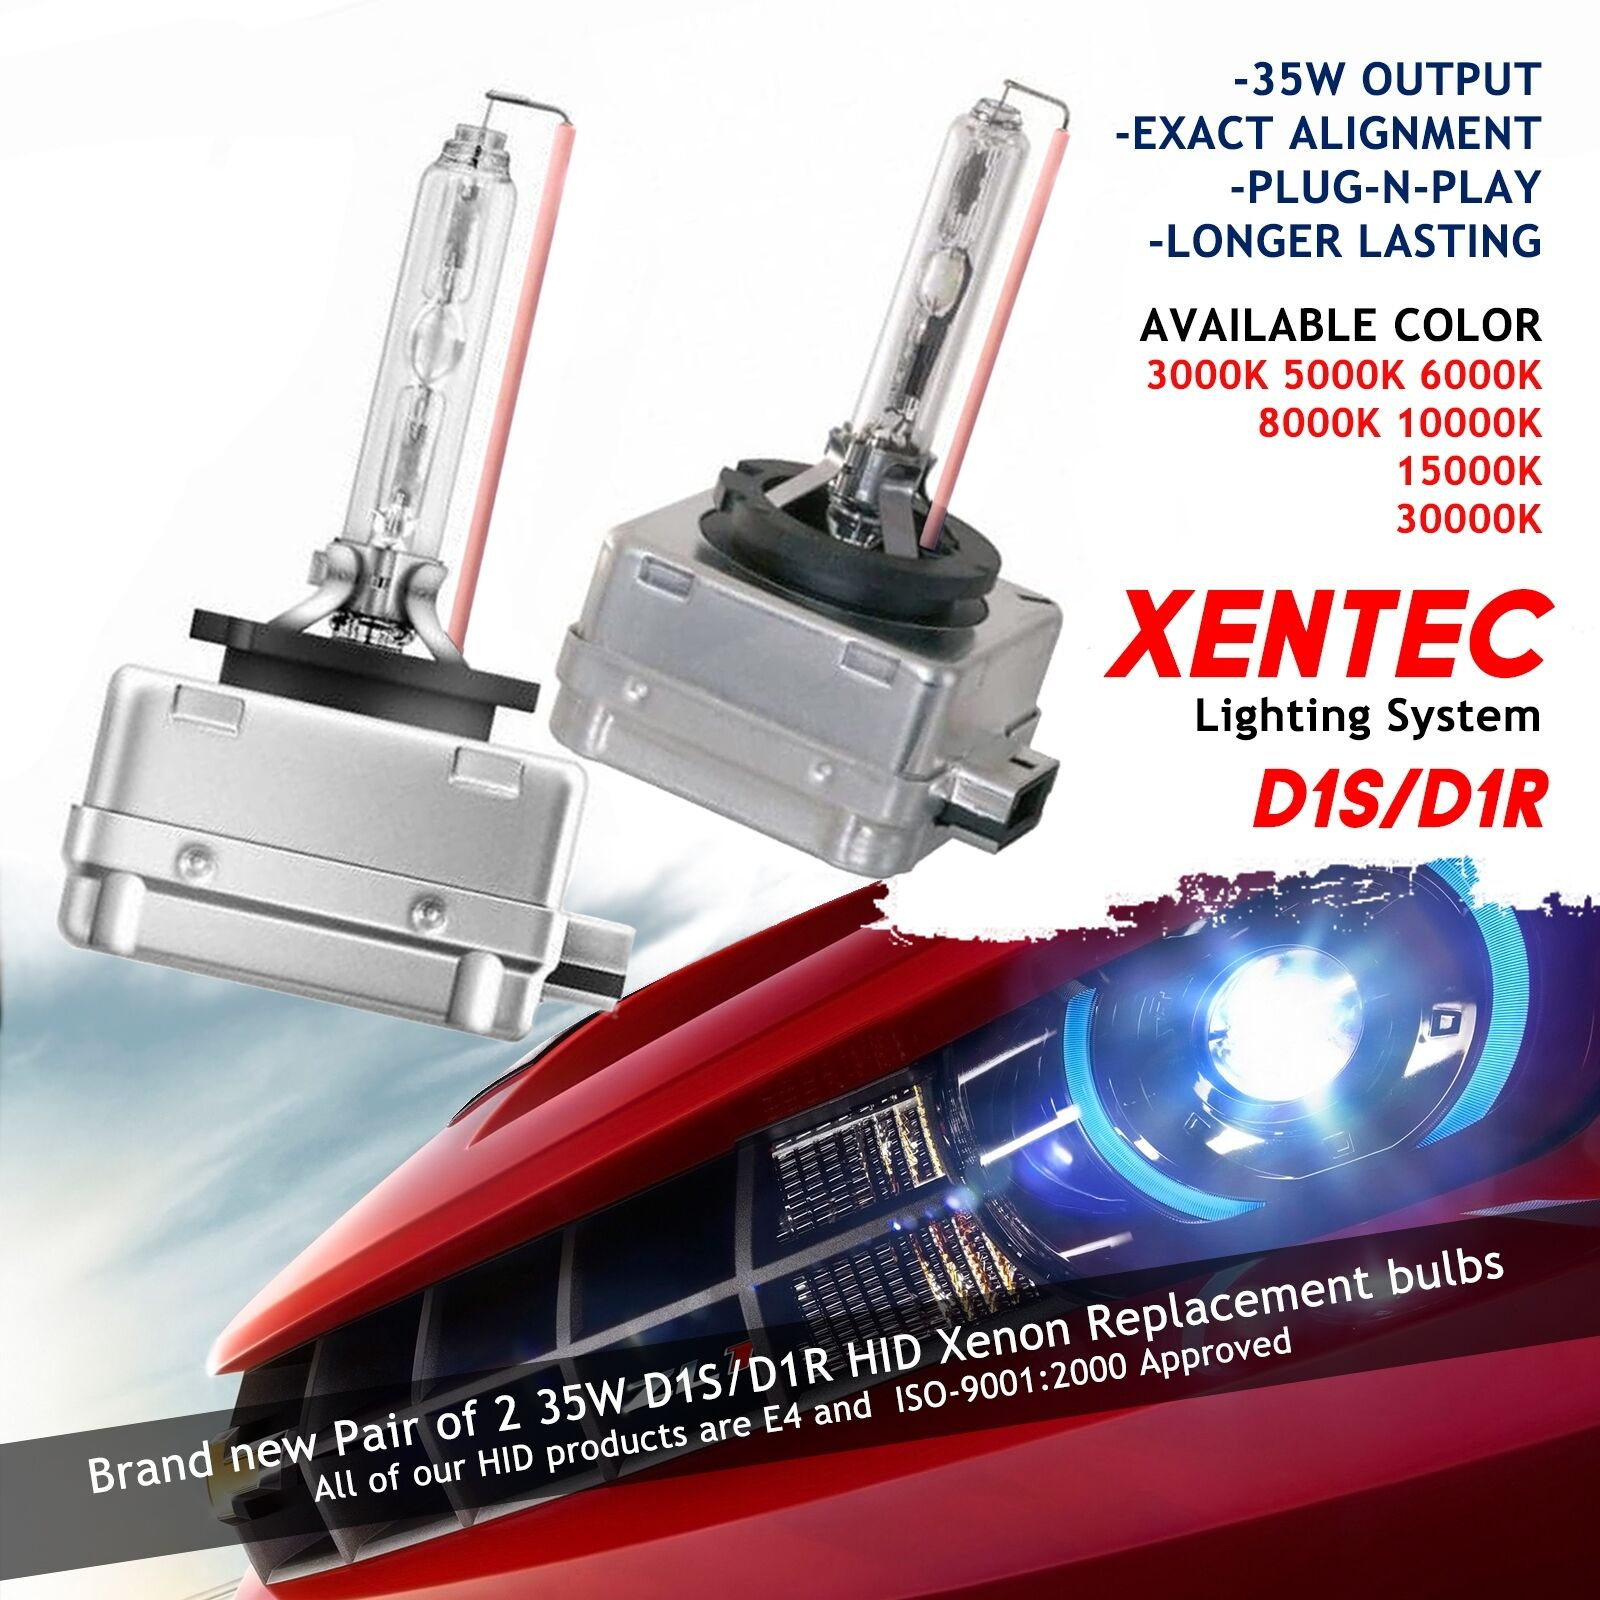 Xentec Xenon Lights Bulbs Hid Kit D1s D1r 3000k 5000k 6000k 8000k 9007 Wiring Diagram 10000k 15000k 1 Of 12free Shipping